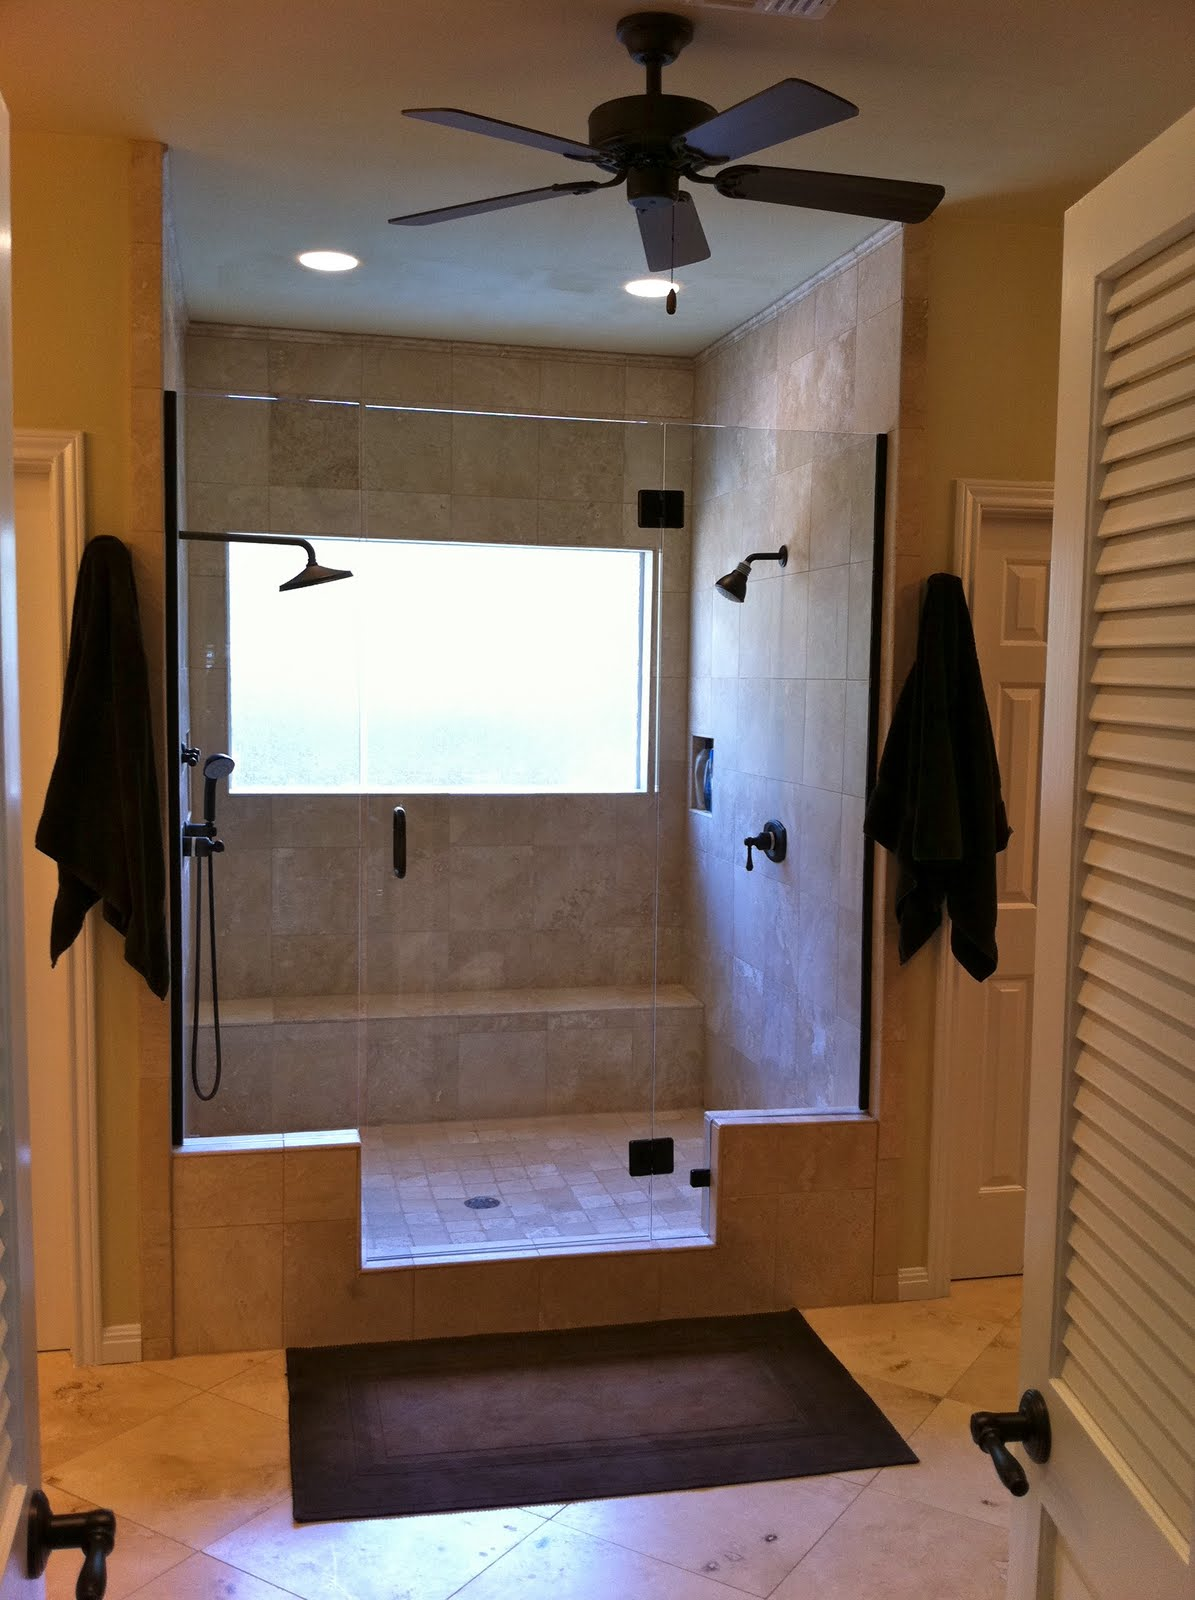 10 adventiges of small bathroom ceiling fans warisan lighting conclusion bathrooms dailygadgetfo Image collections